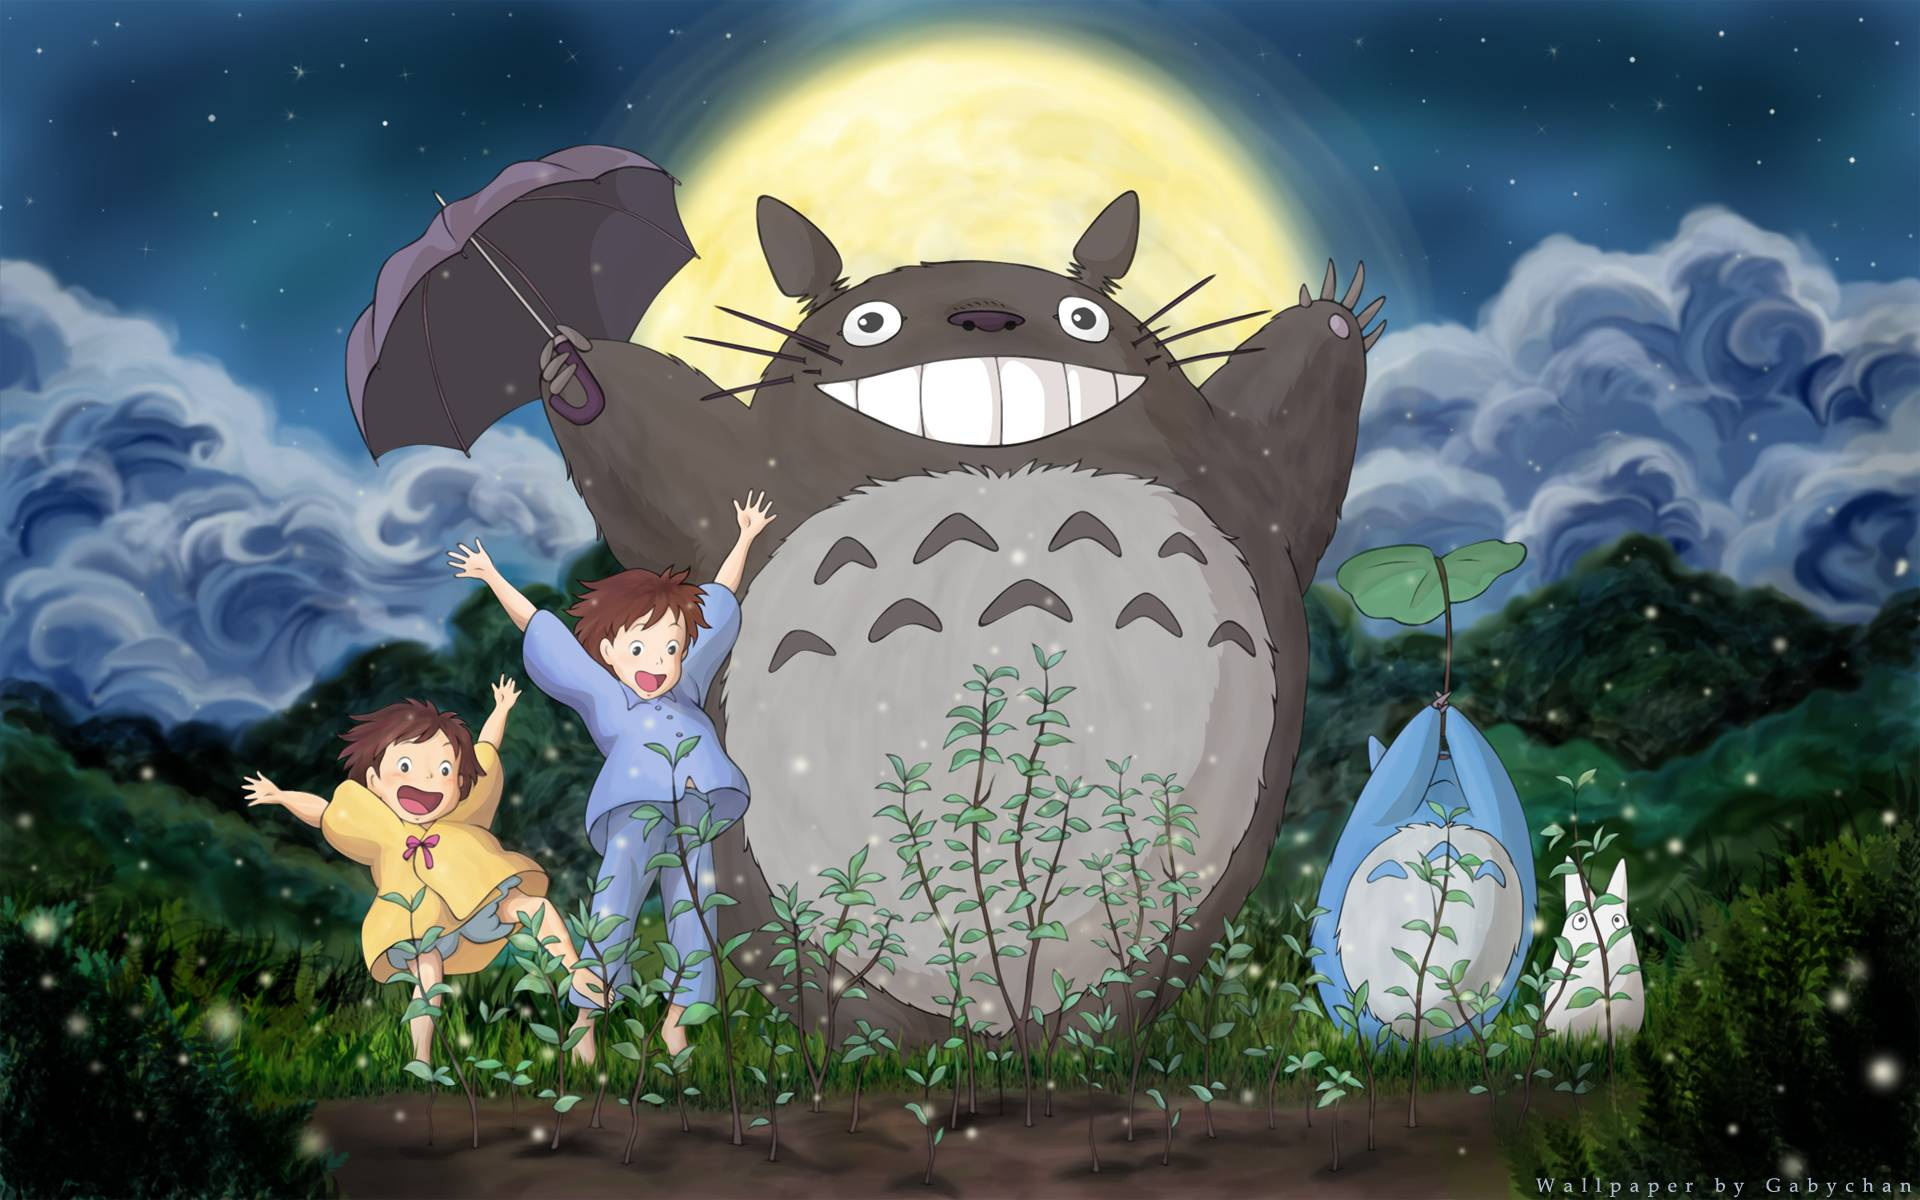 X1Houxs-studio-ghibli-wallpaper